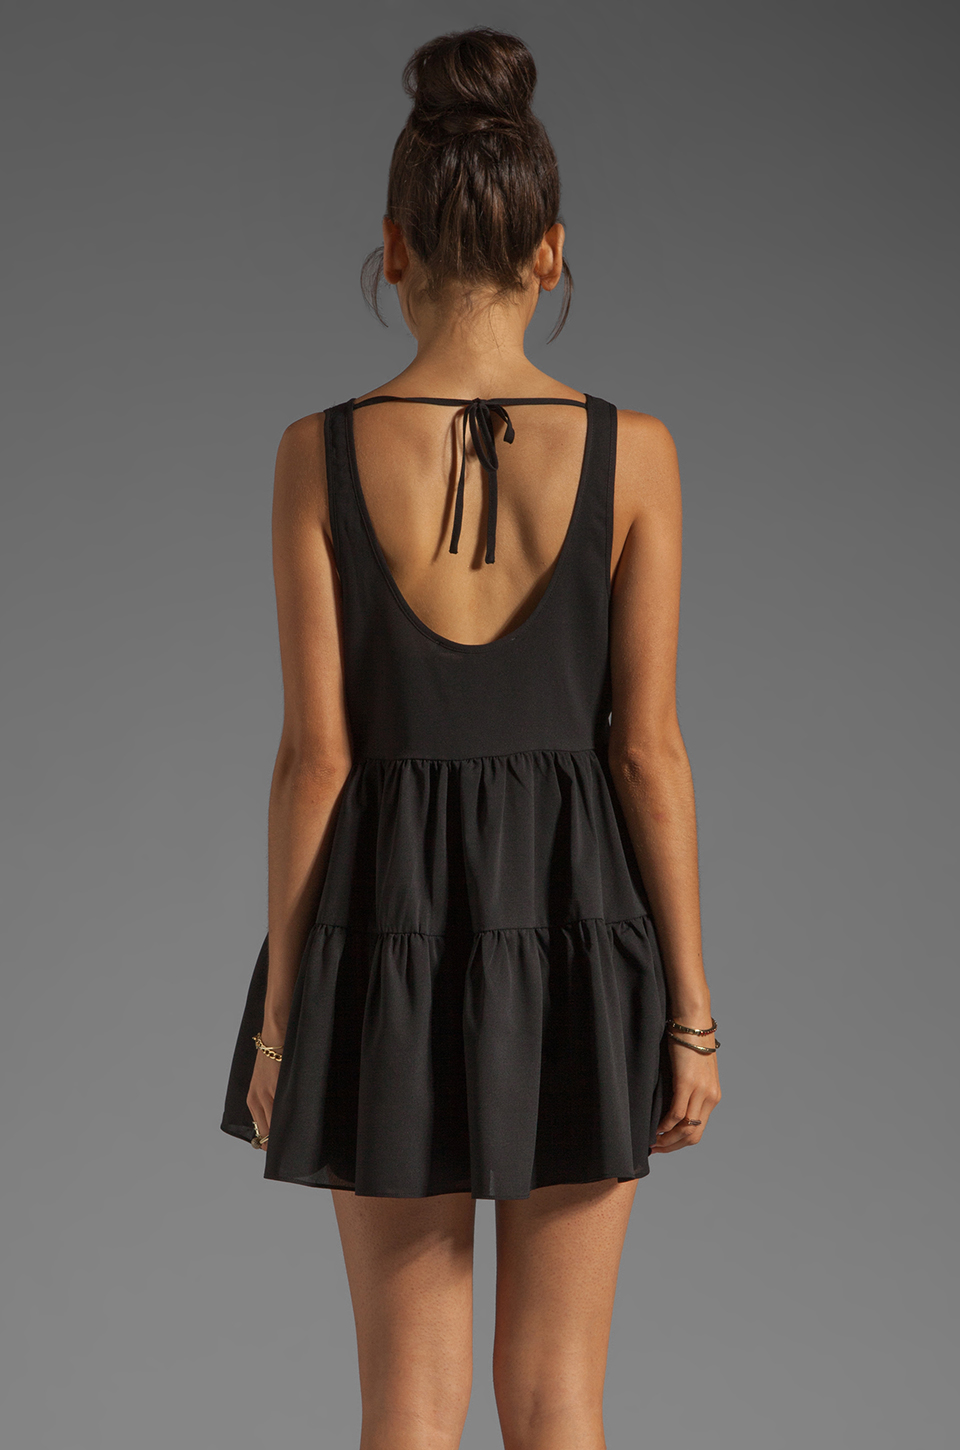 Lovers + Friends Lovers + Friends Angel Dress in Black